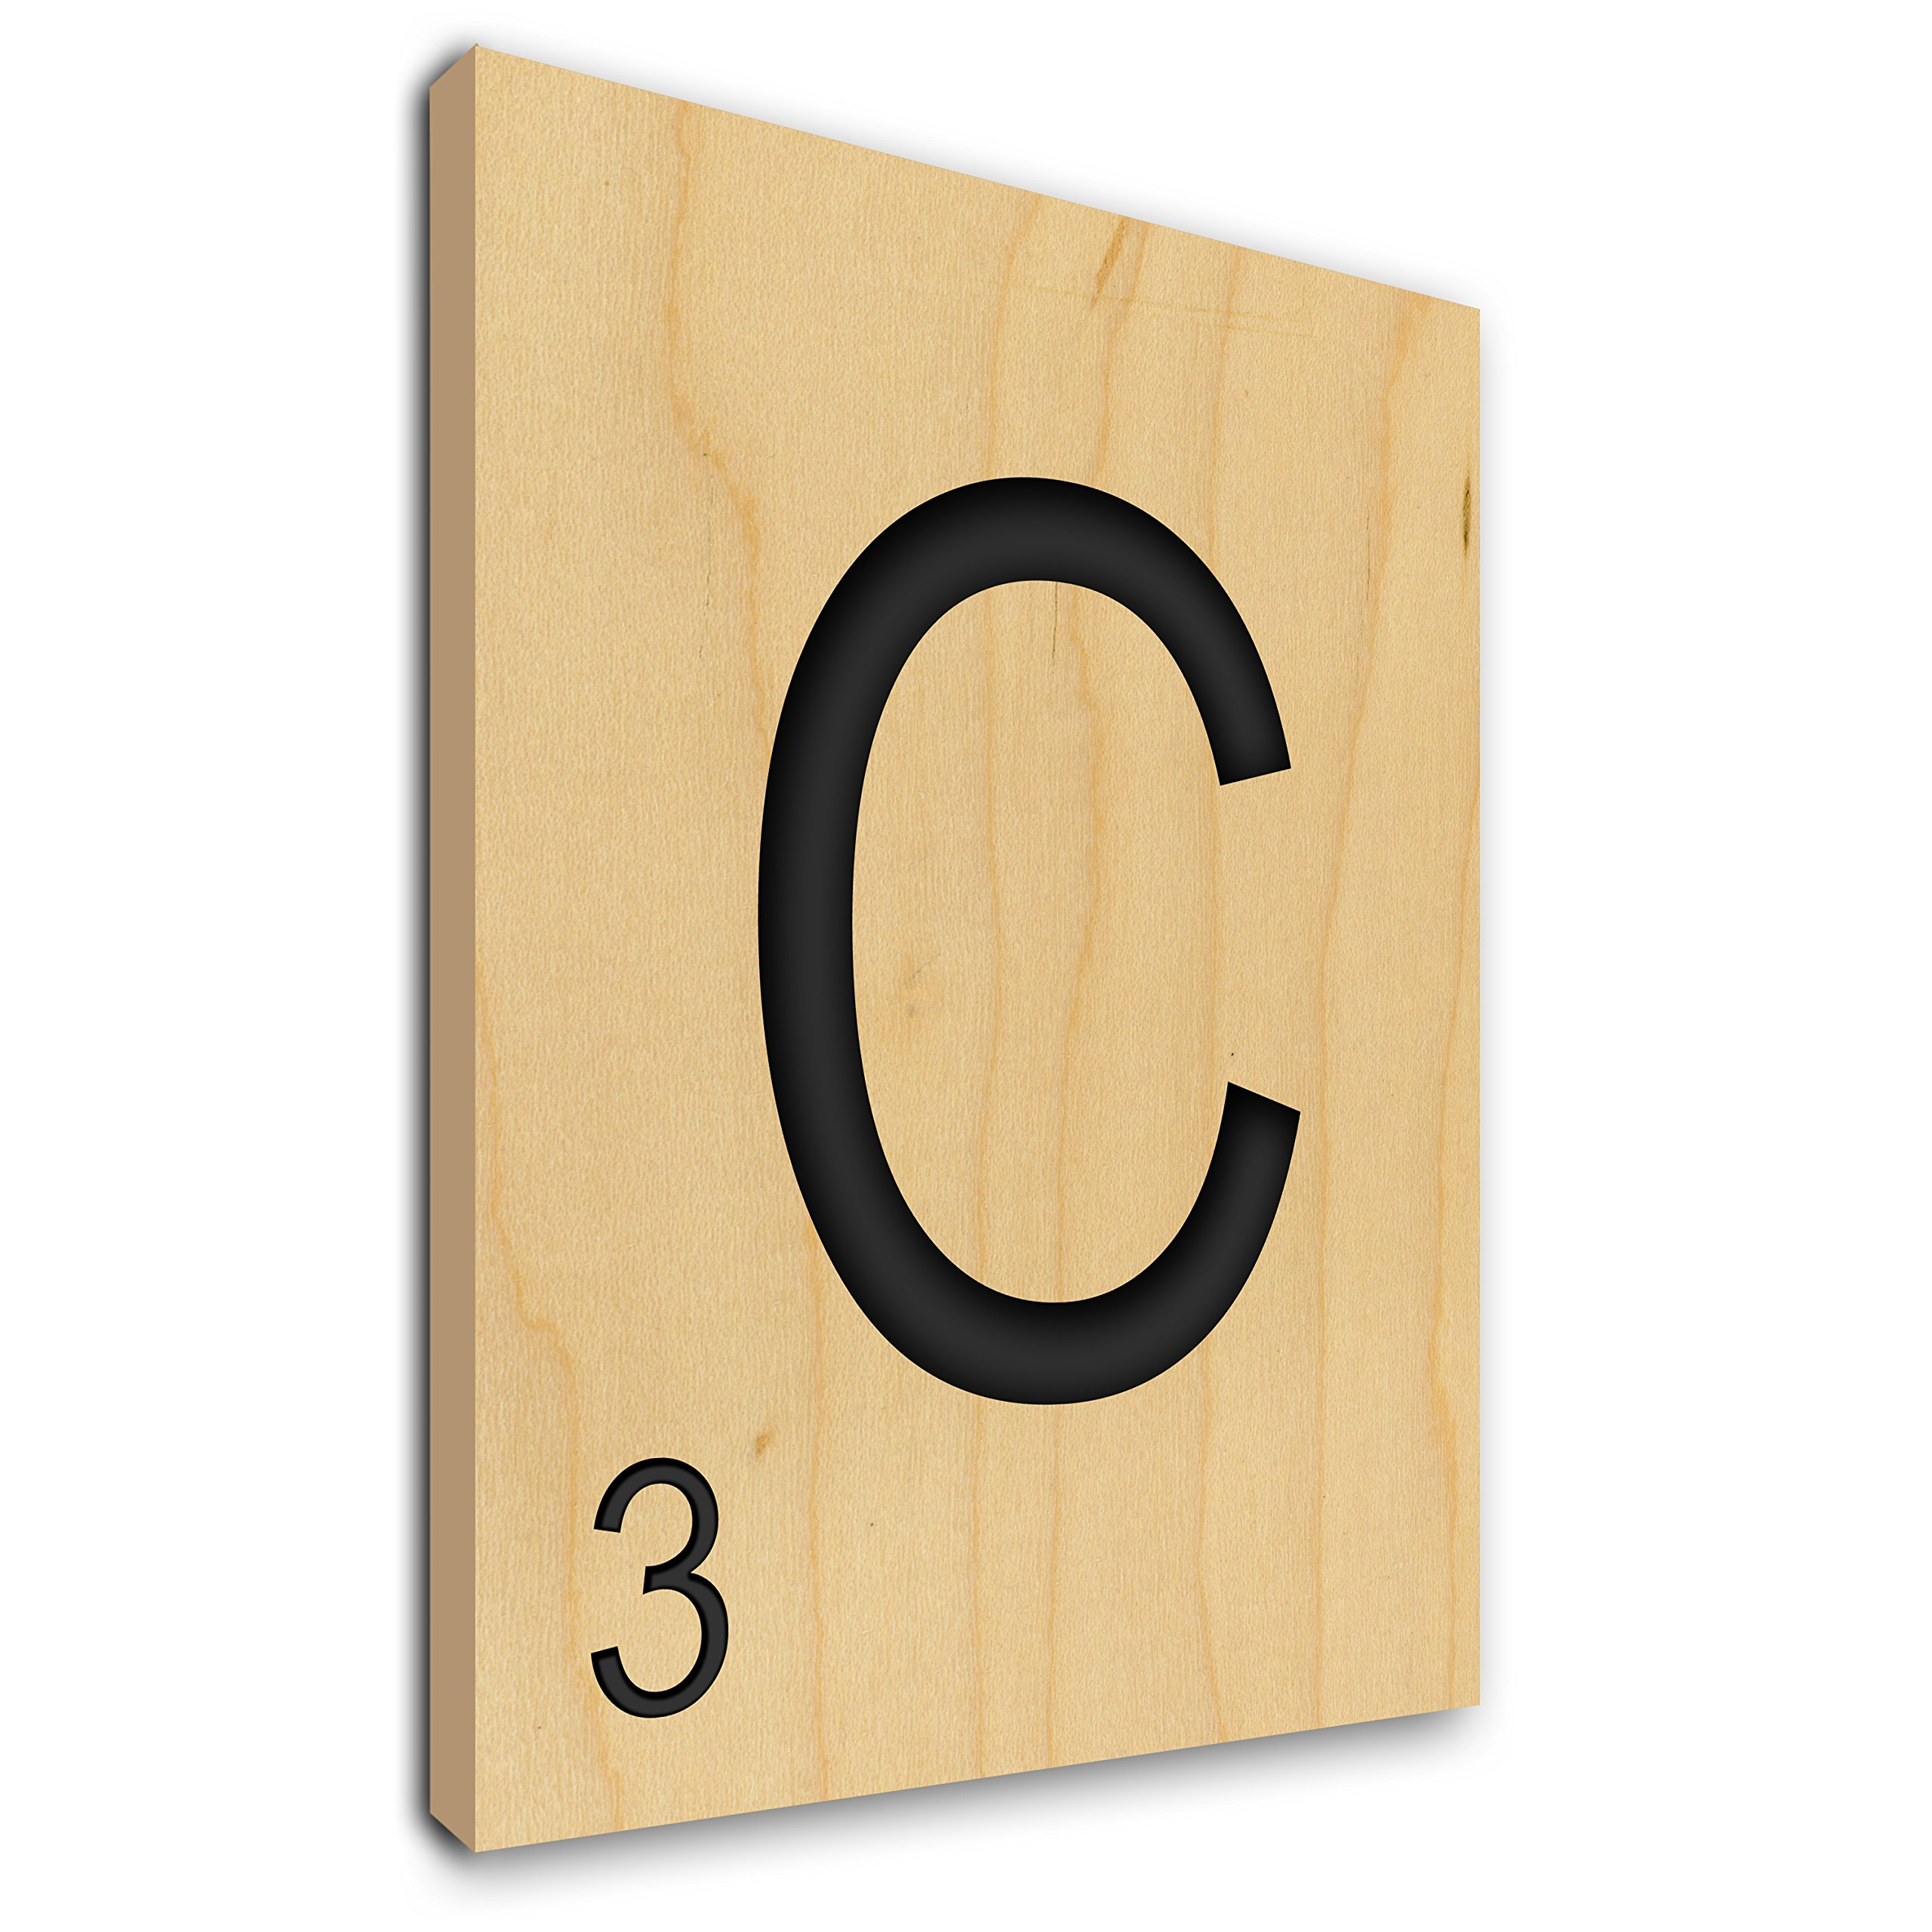 Letter C Wall Decor: Amazon.com